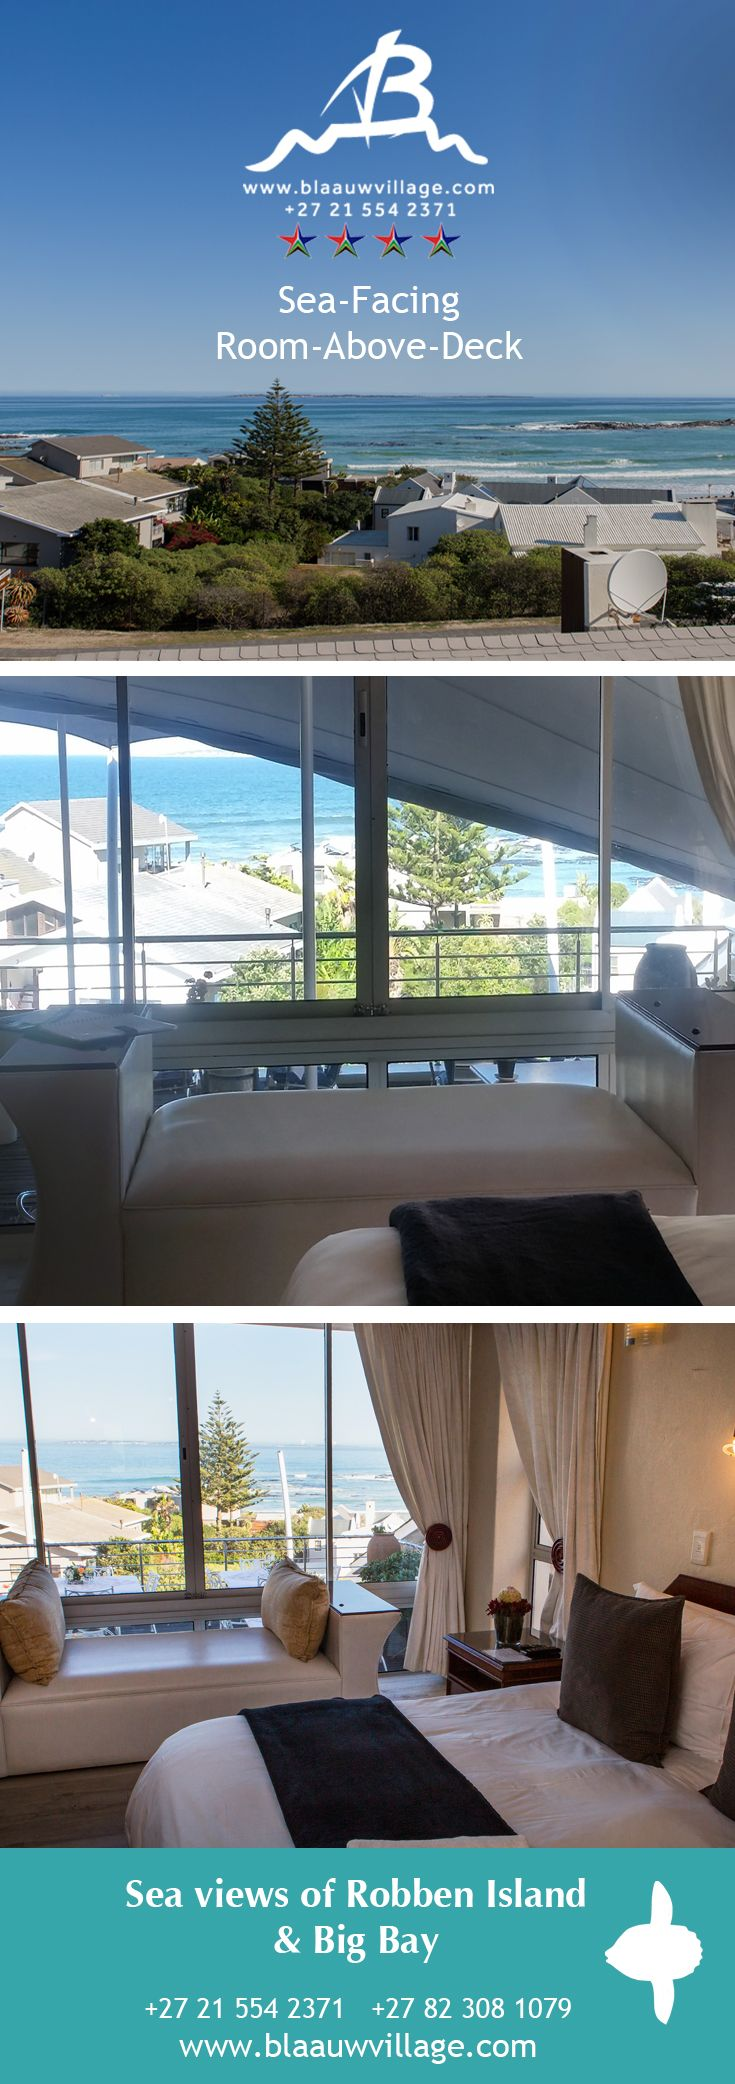 If the world is your oyster, this room will present you with all that you may desire, full views over Big Bay and Small Bay. During the summer months sails are drawn over the lower section to provide shade from the hot African sun. Allowing for partial sea views during the summer time  Let's hear from you! +27 21 554 2371 +27 82 308 1079